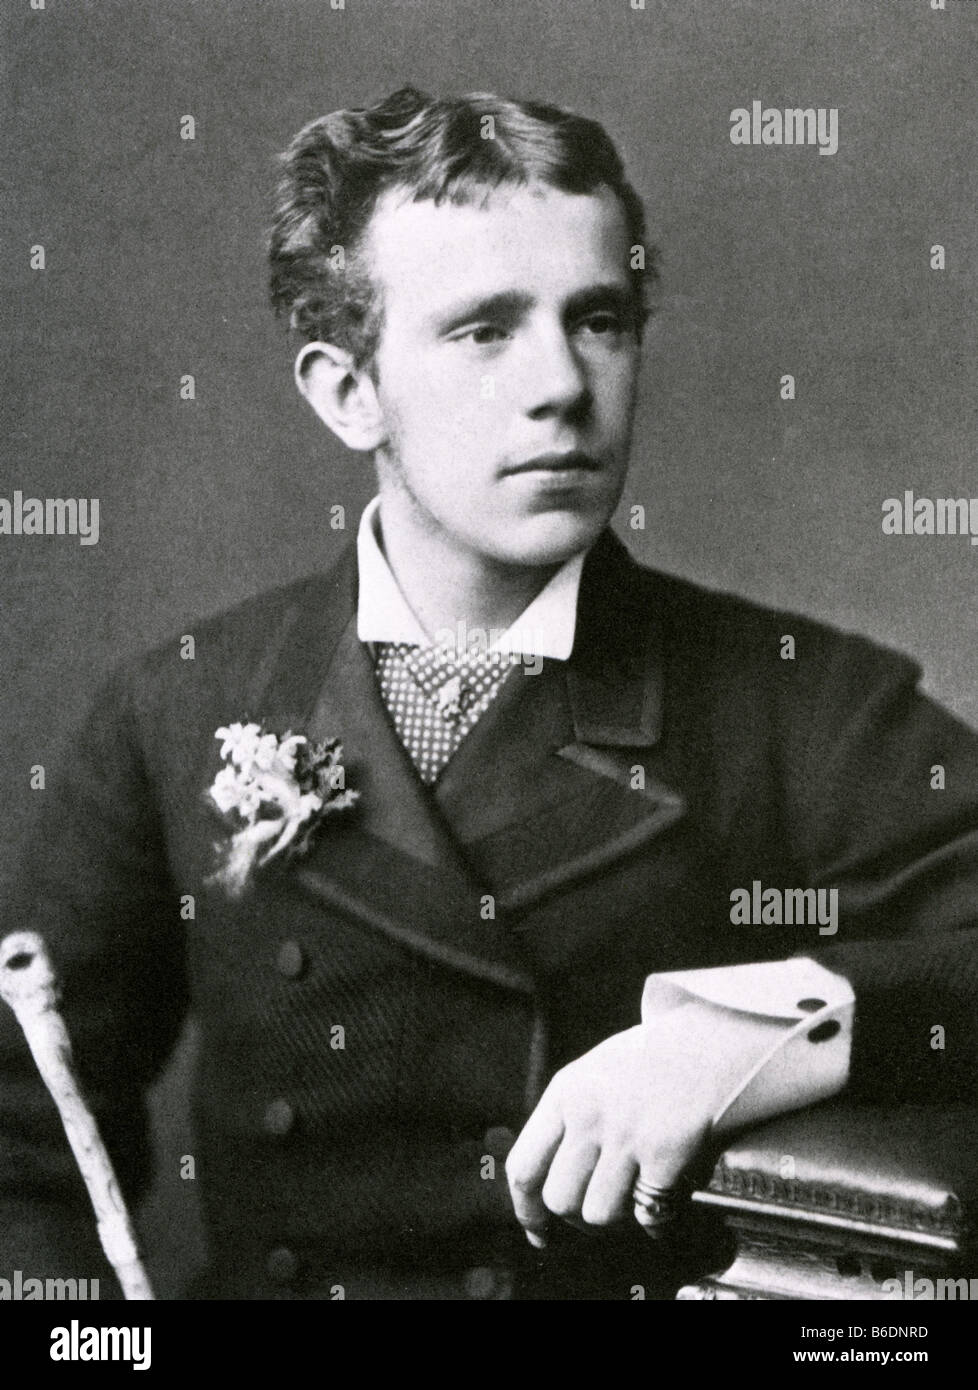 CROWN PRINCE RUDOLPH OF AUSTRIA who committed suicide at Mayerling in January 1889 - Stock Image